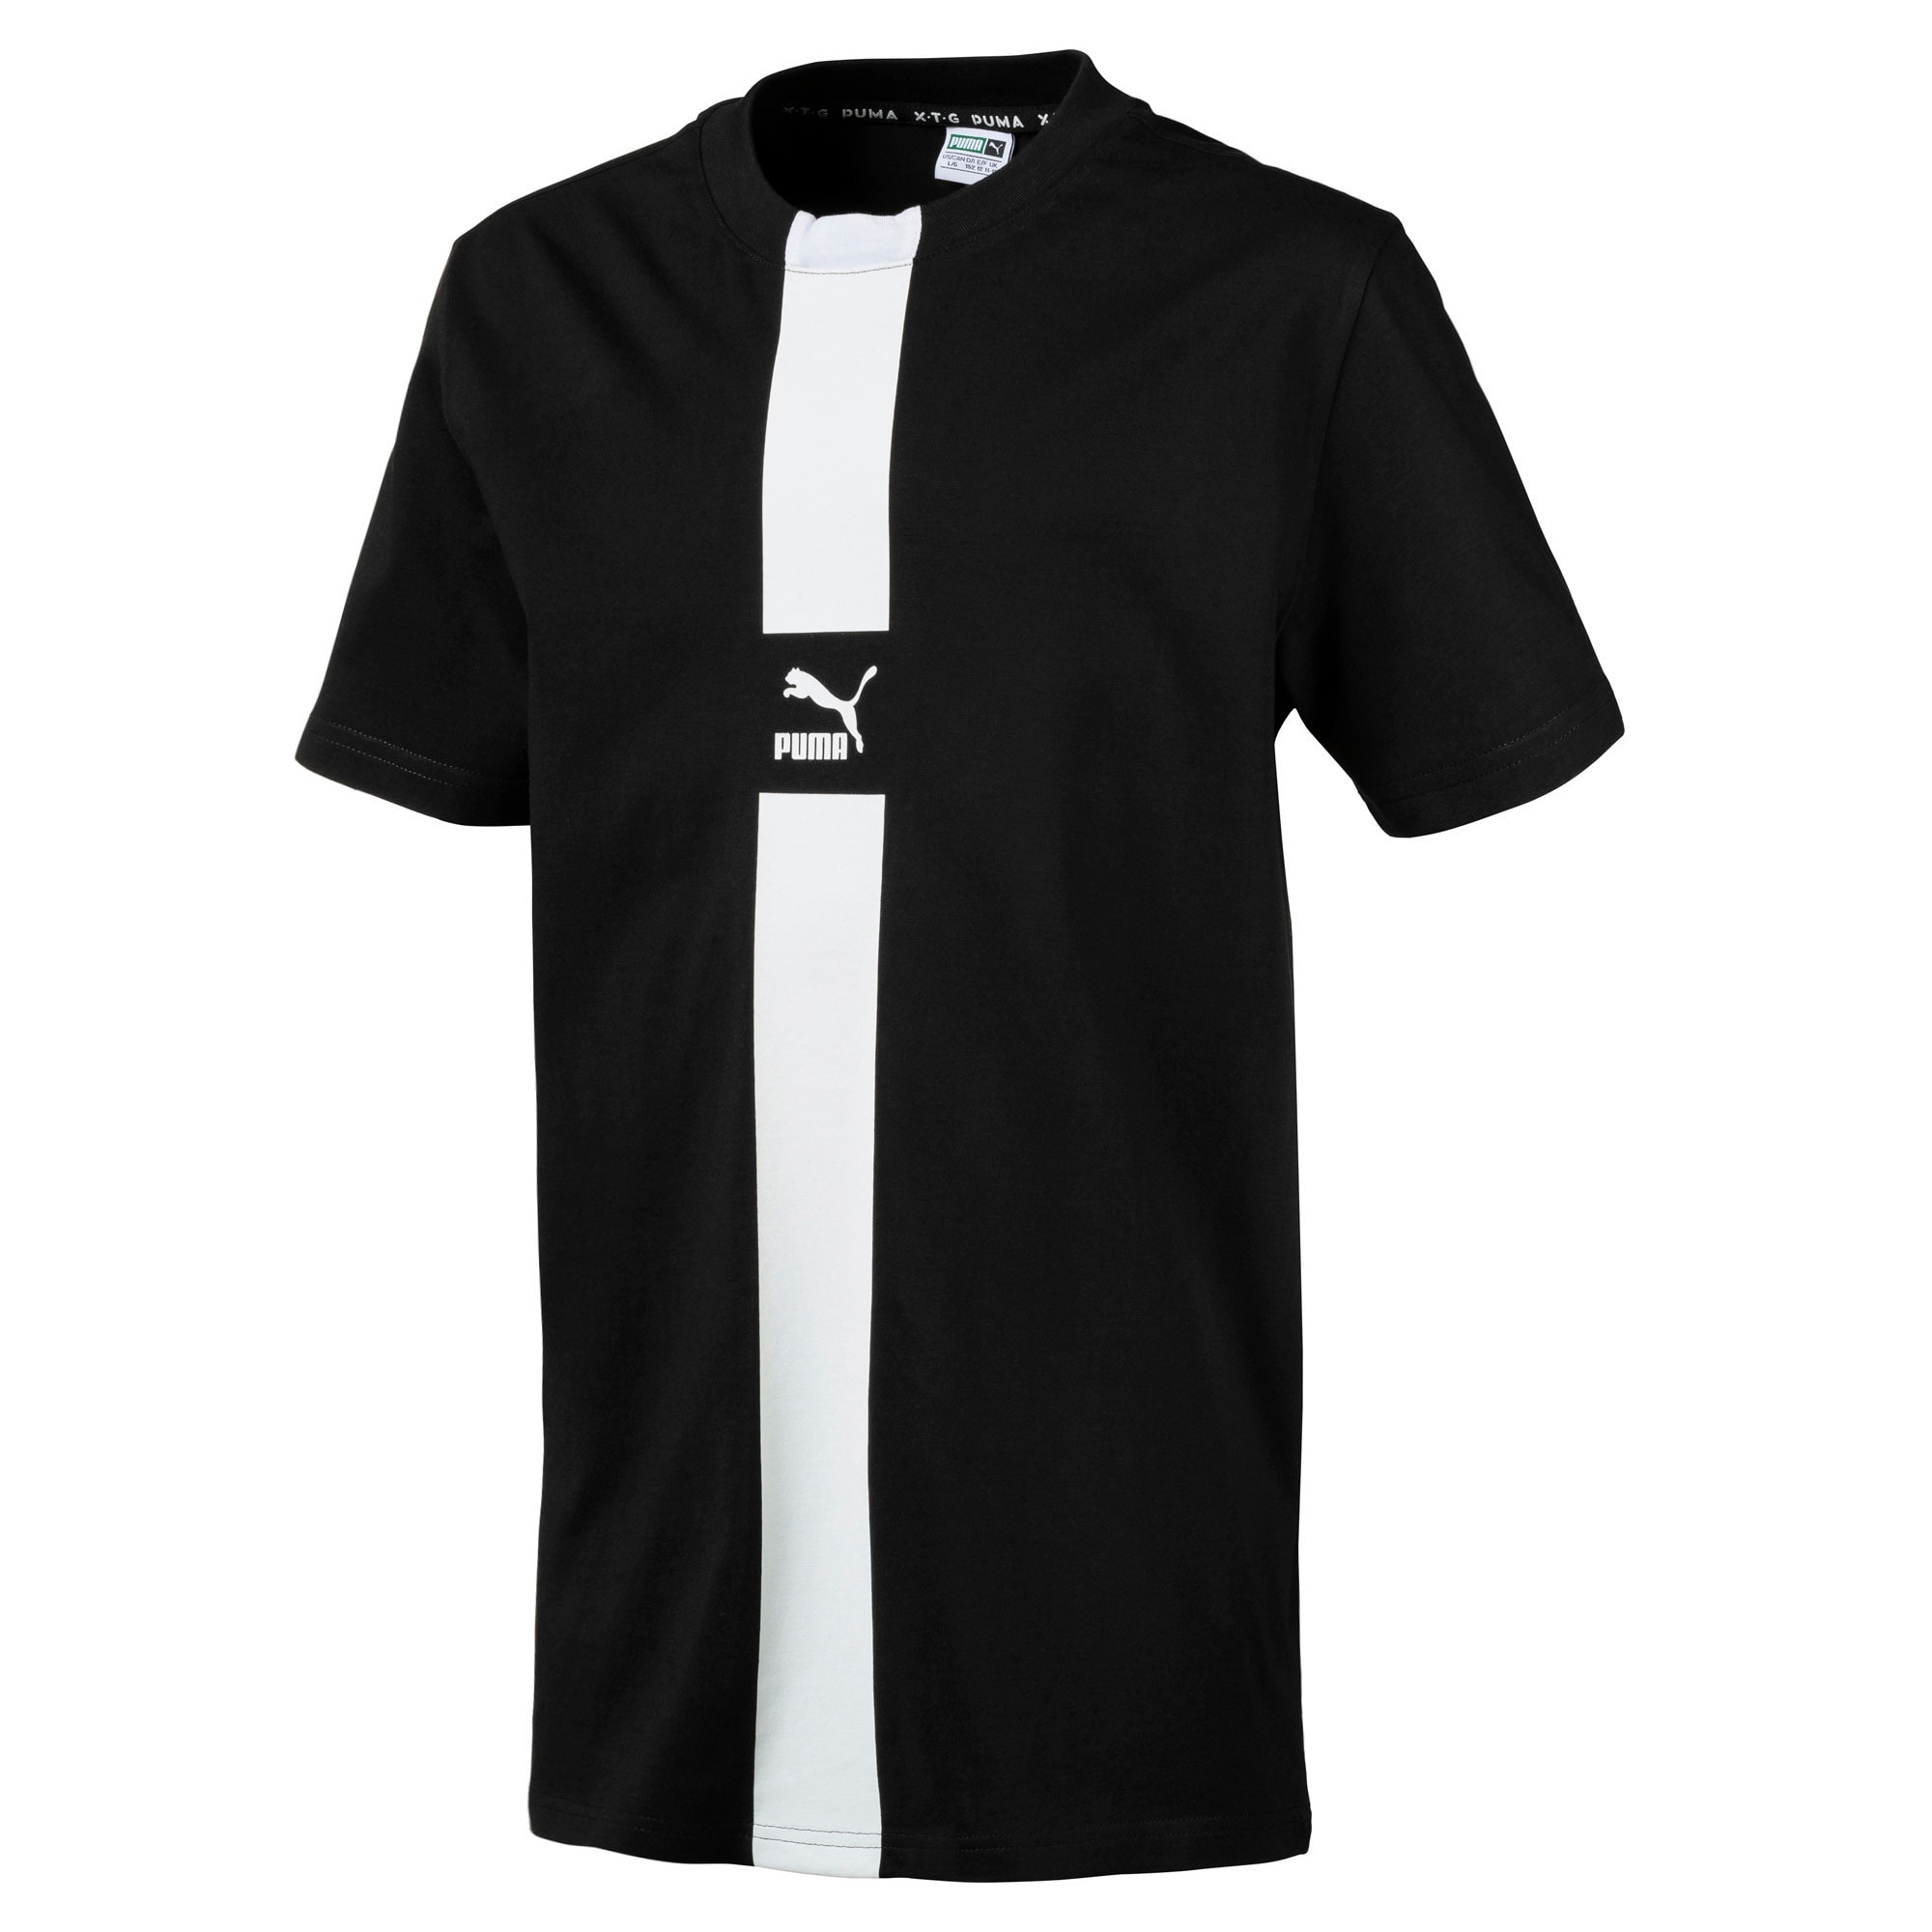 Thumbnail 1 of XTG Jungen T-Shirt, Cotton Black, medium